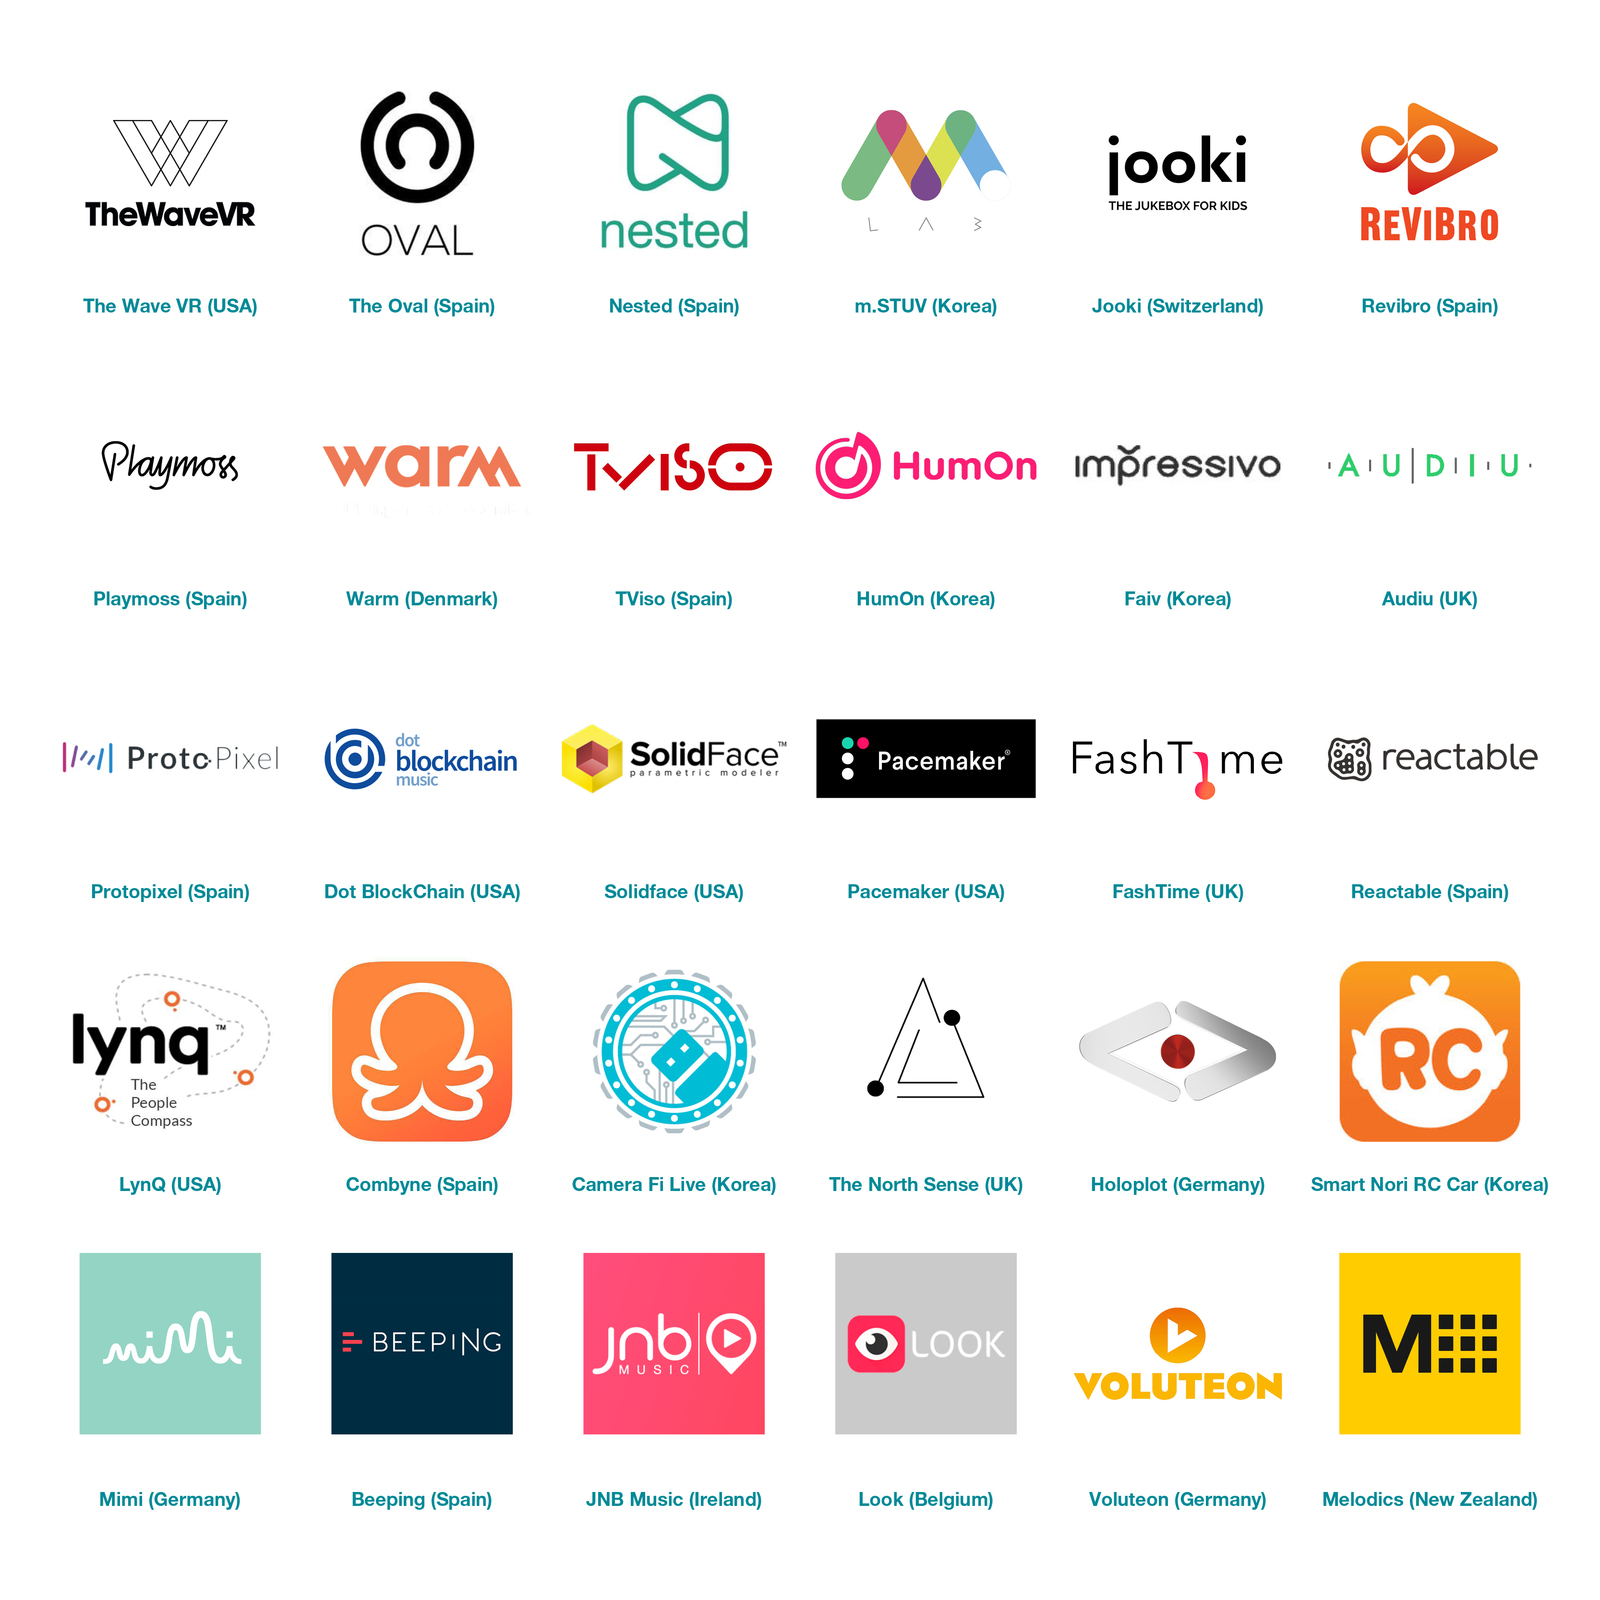 The Chosen 30 Startups